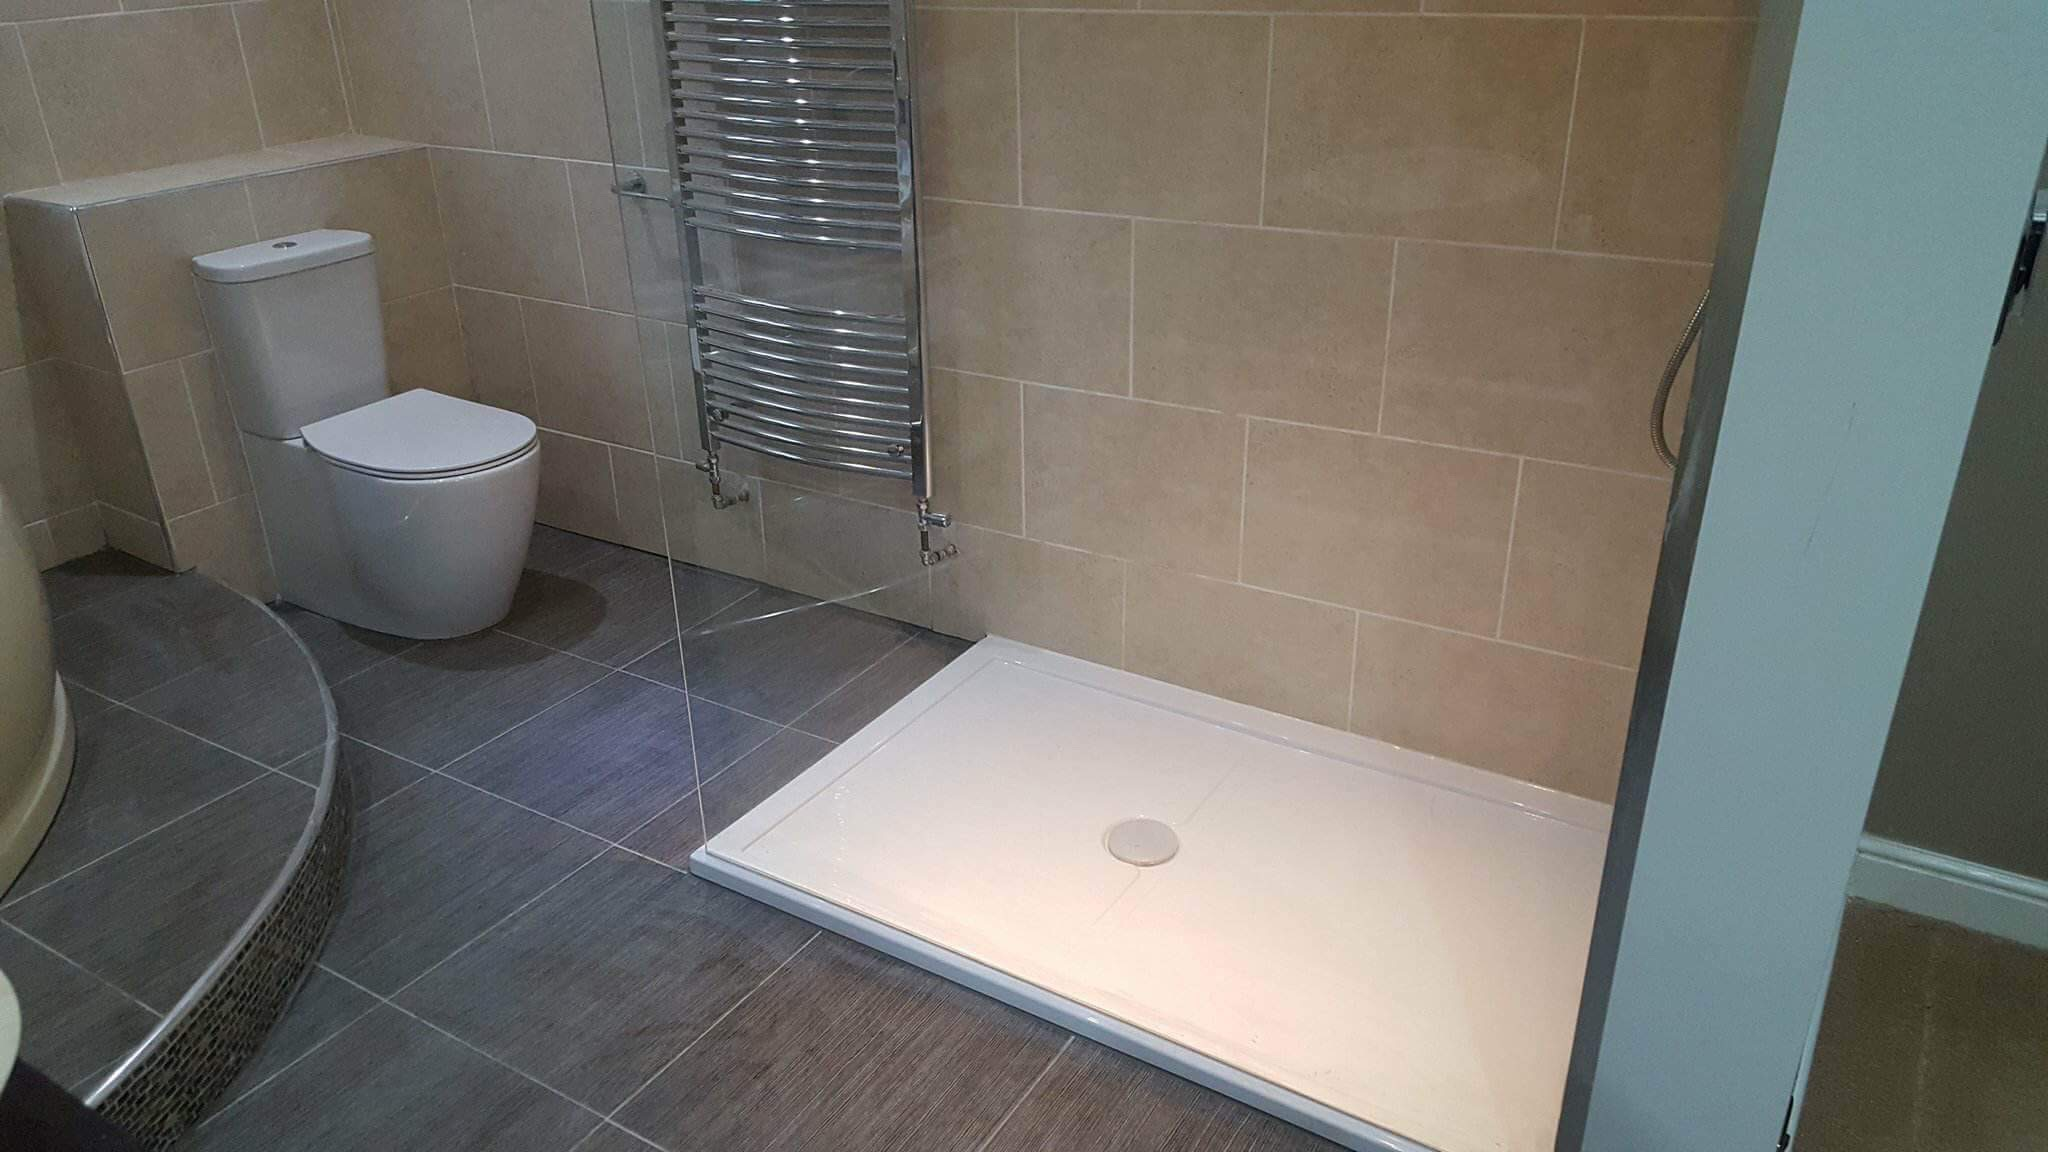 replacement of leaking inset wetroom floor with shower tray